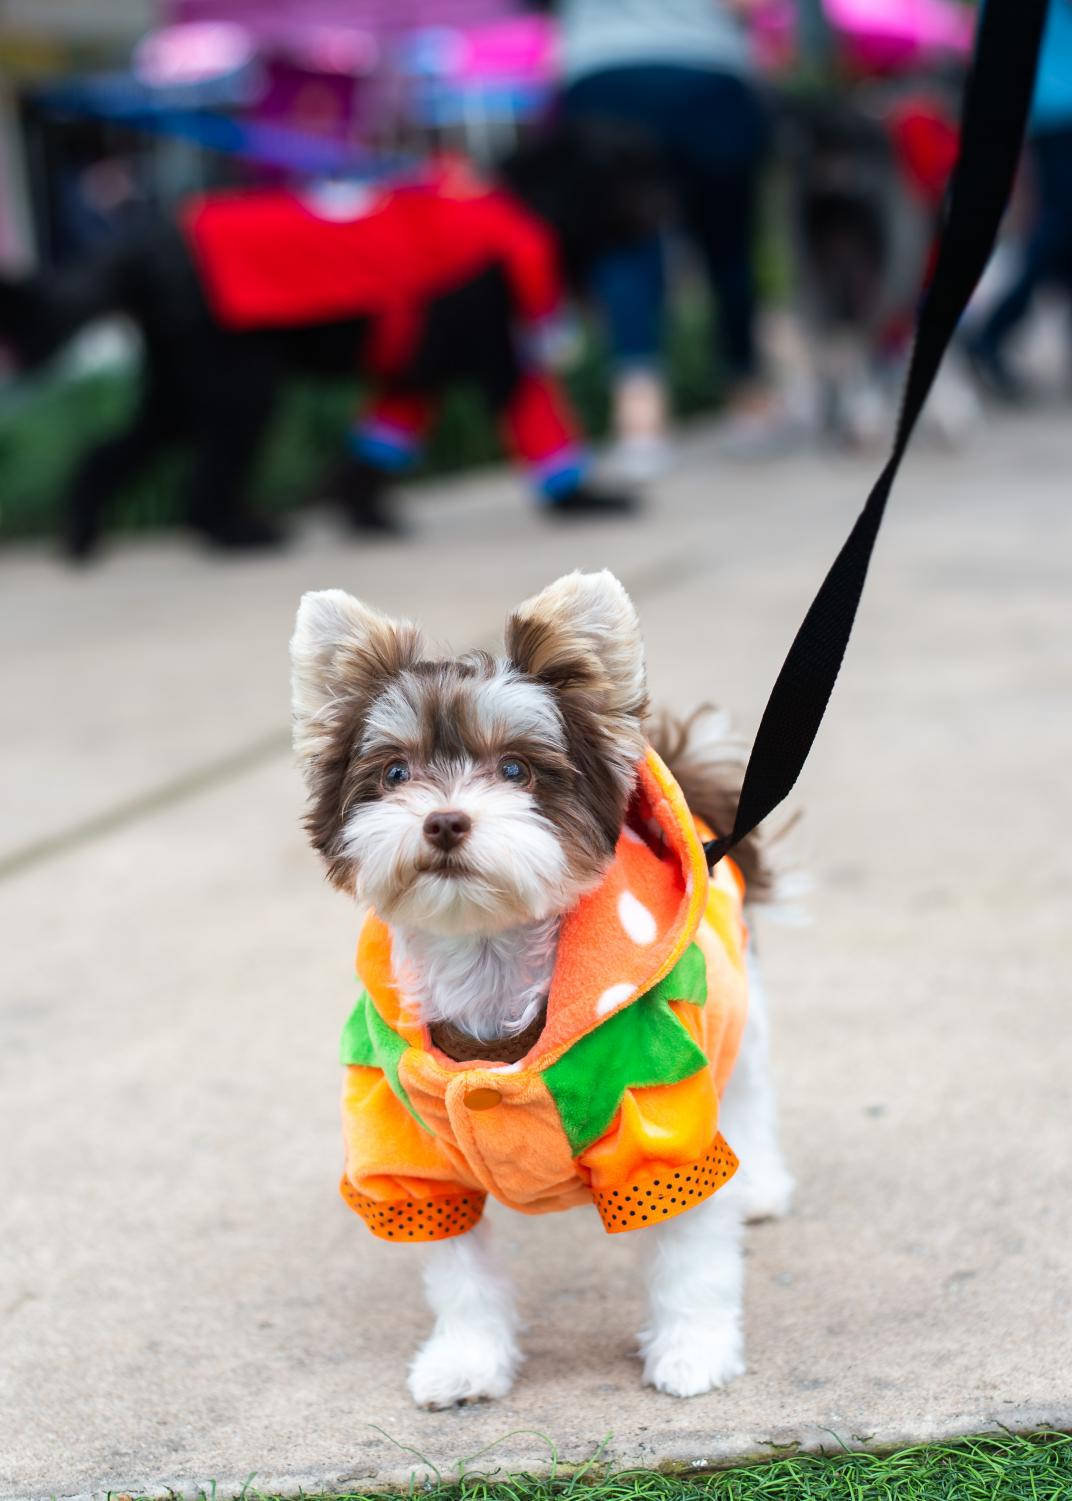 A+10-month-old+yorkshire+terrier+dresses+up+as+a+pumpkin.+%22She+and+her+brother+are+German+yorkies%2C+%5Bwhich+are%5D+even+smaller+than+normal+ones%2C%22+their+owner+said.